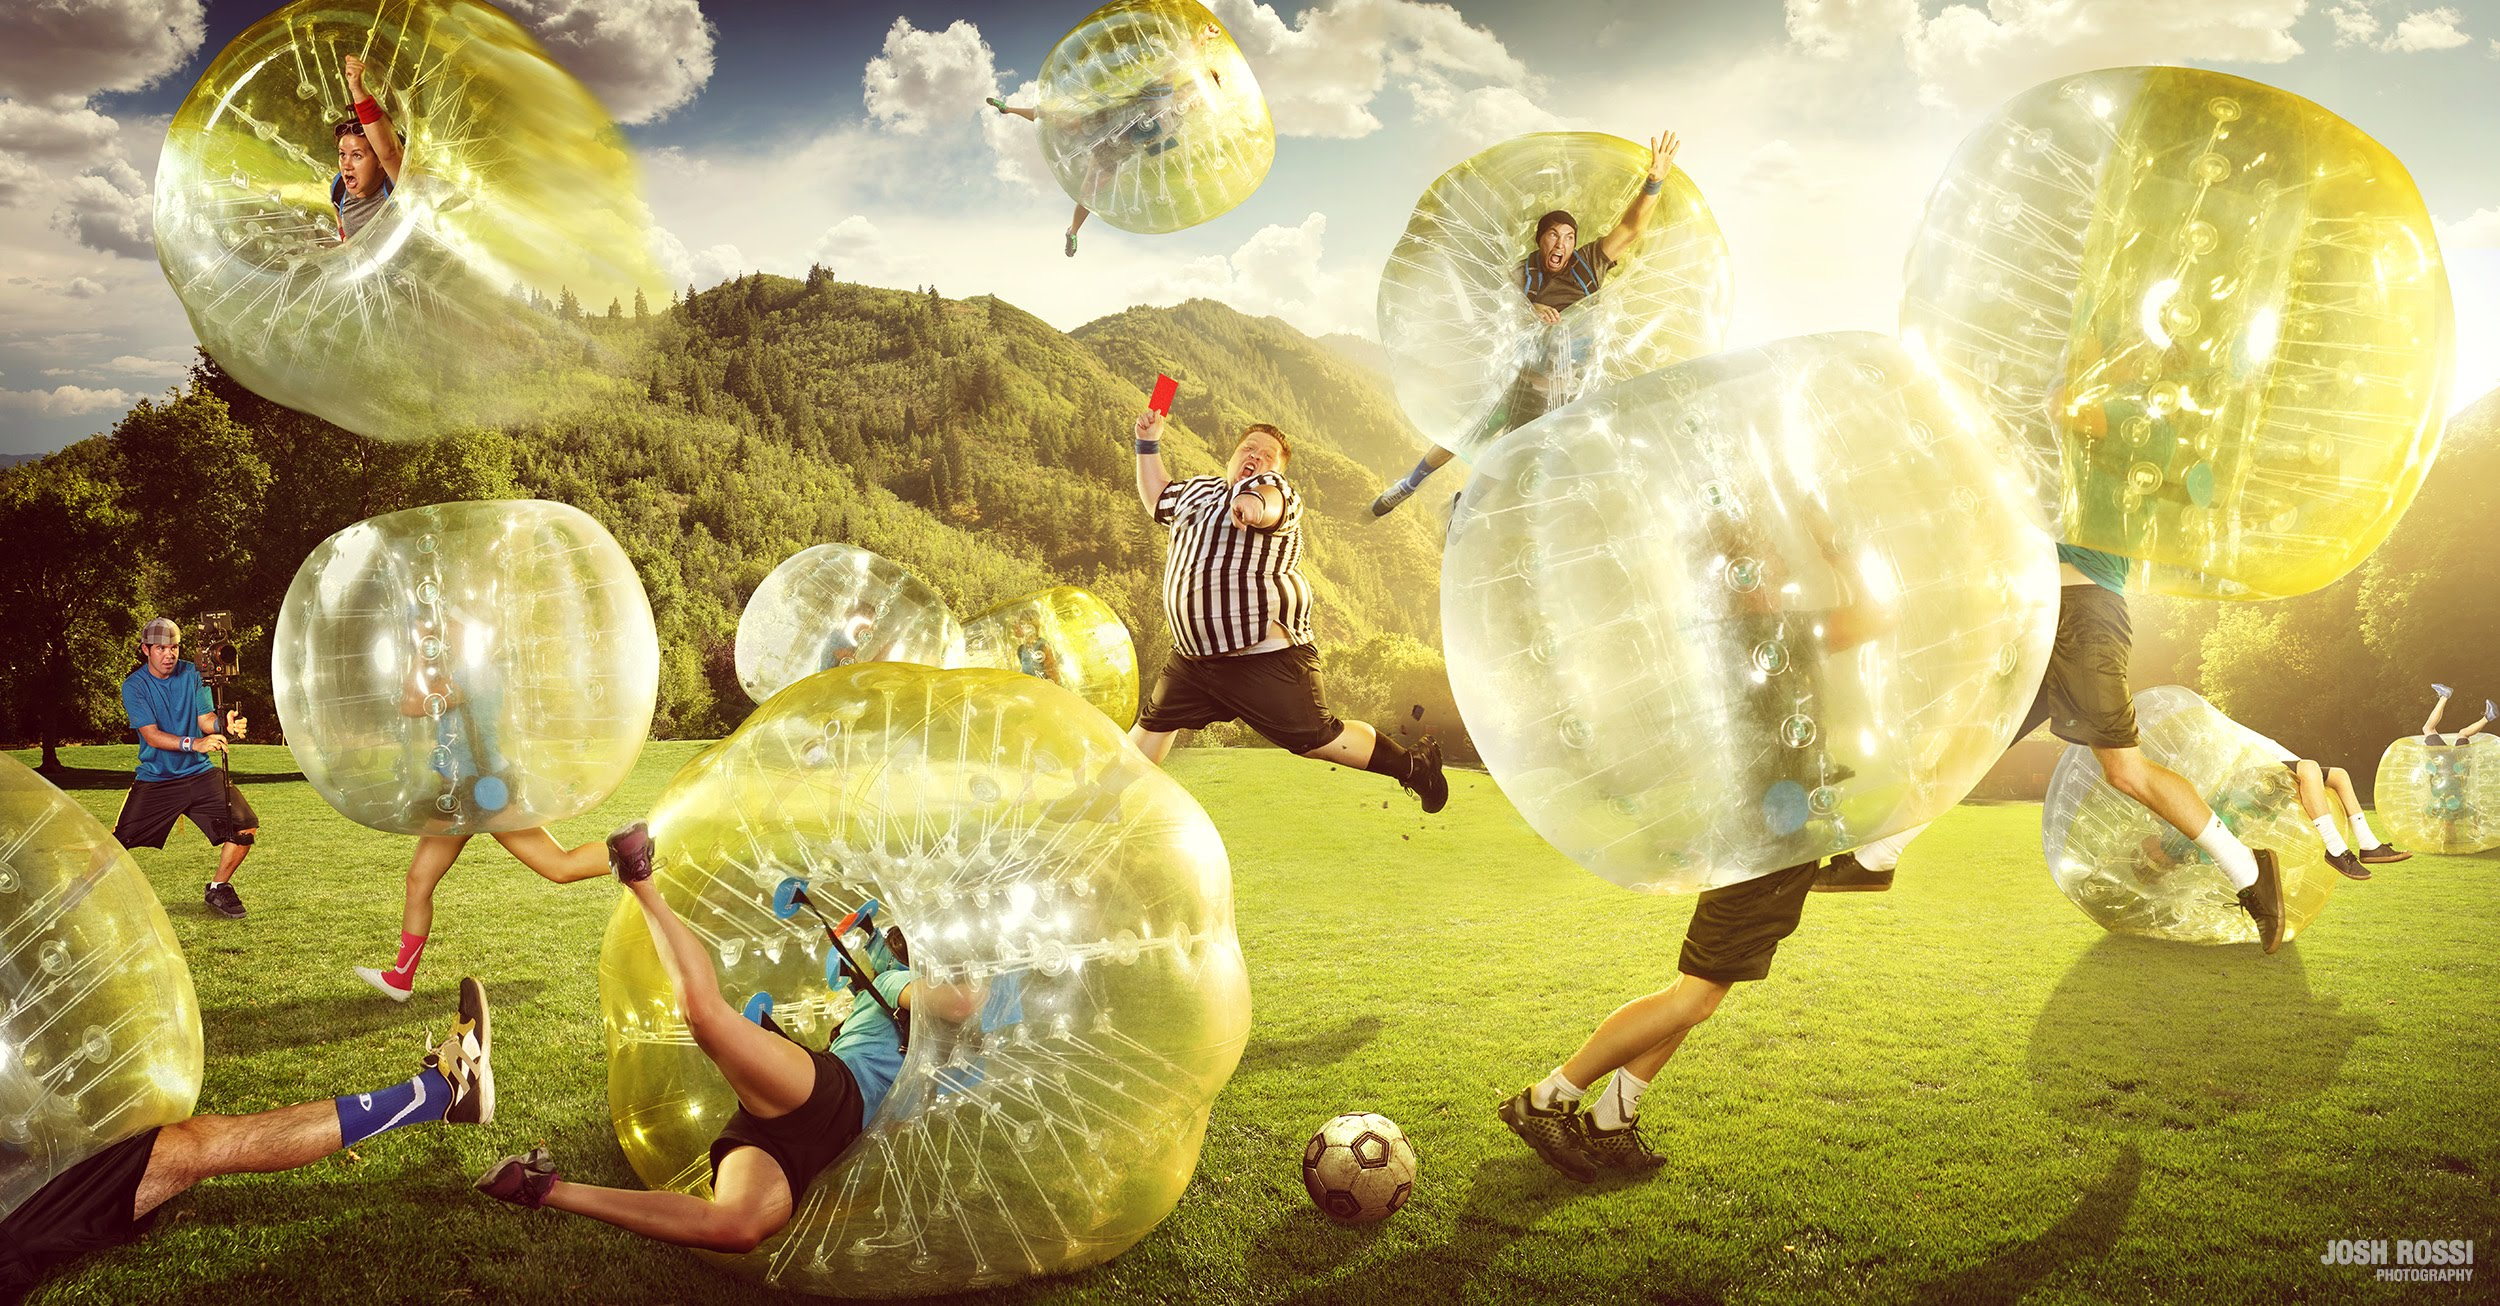 Epic Bubble Soccer Match